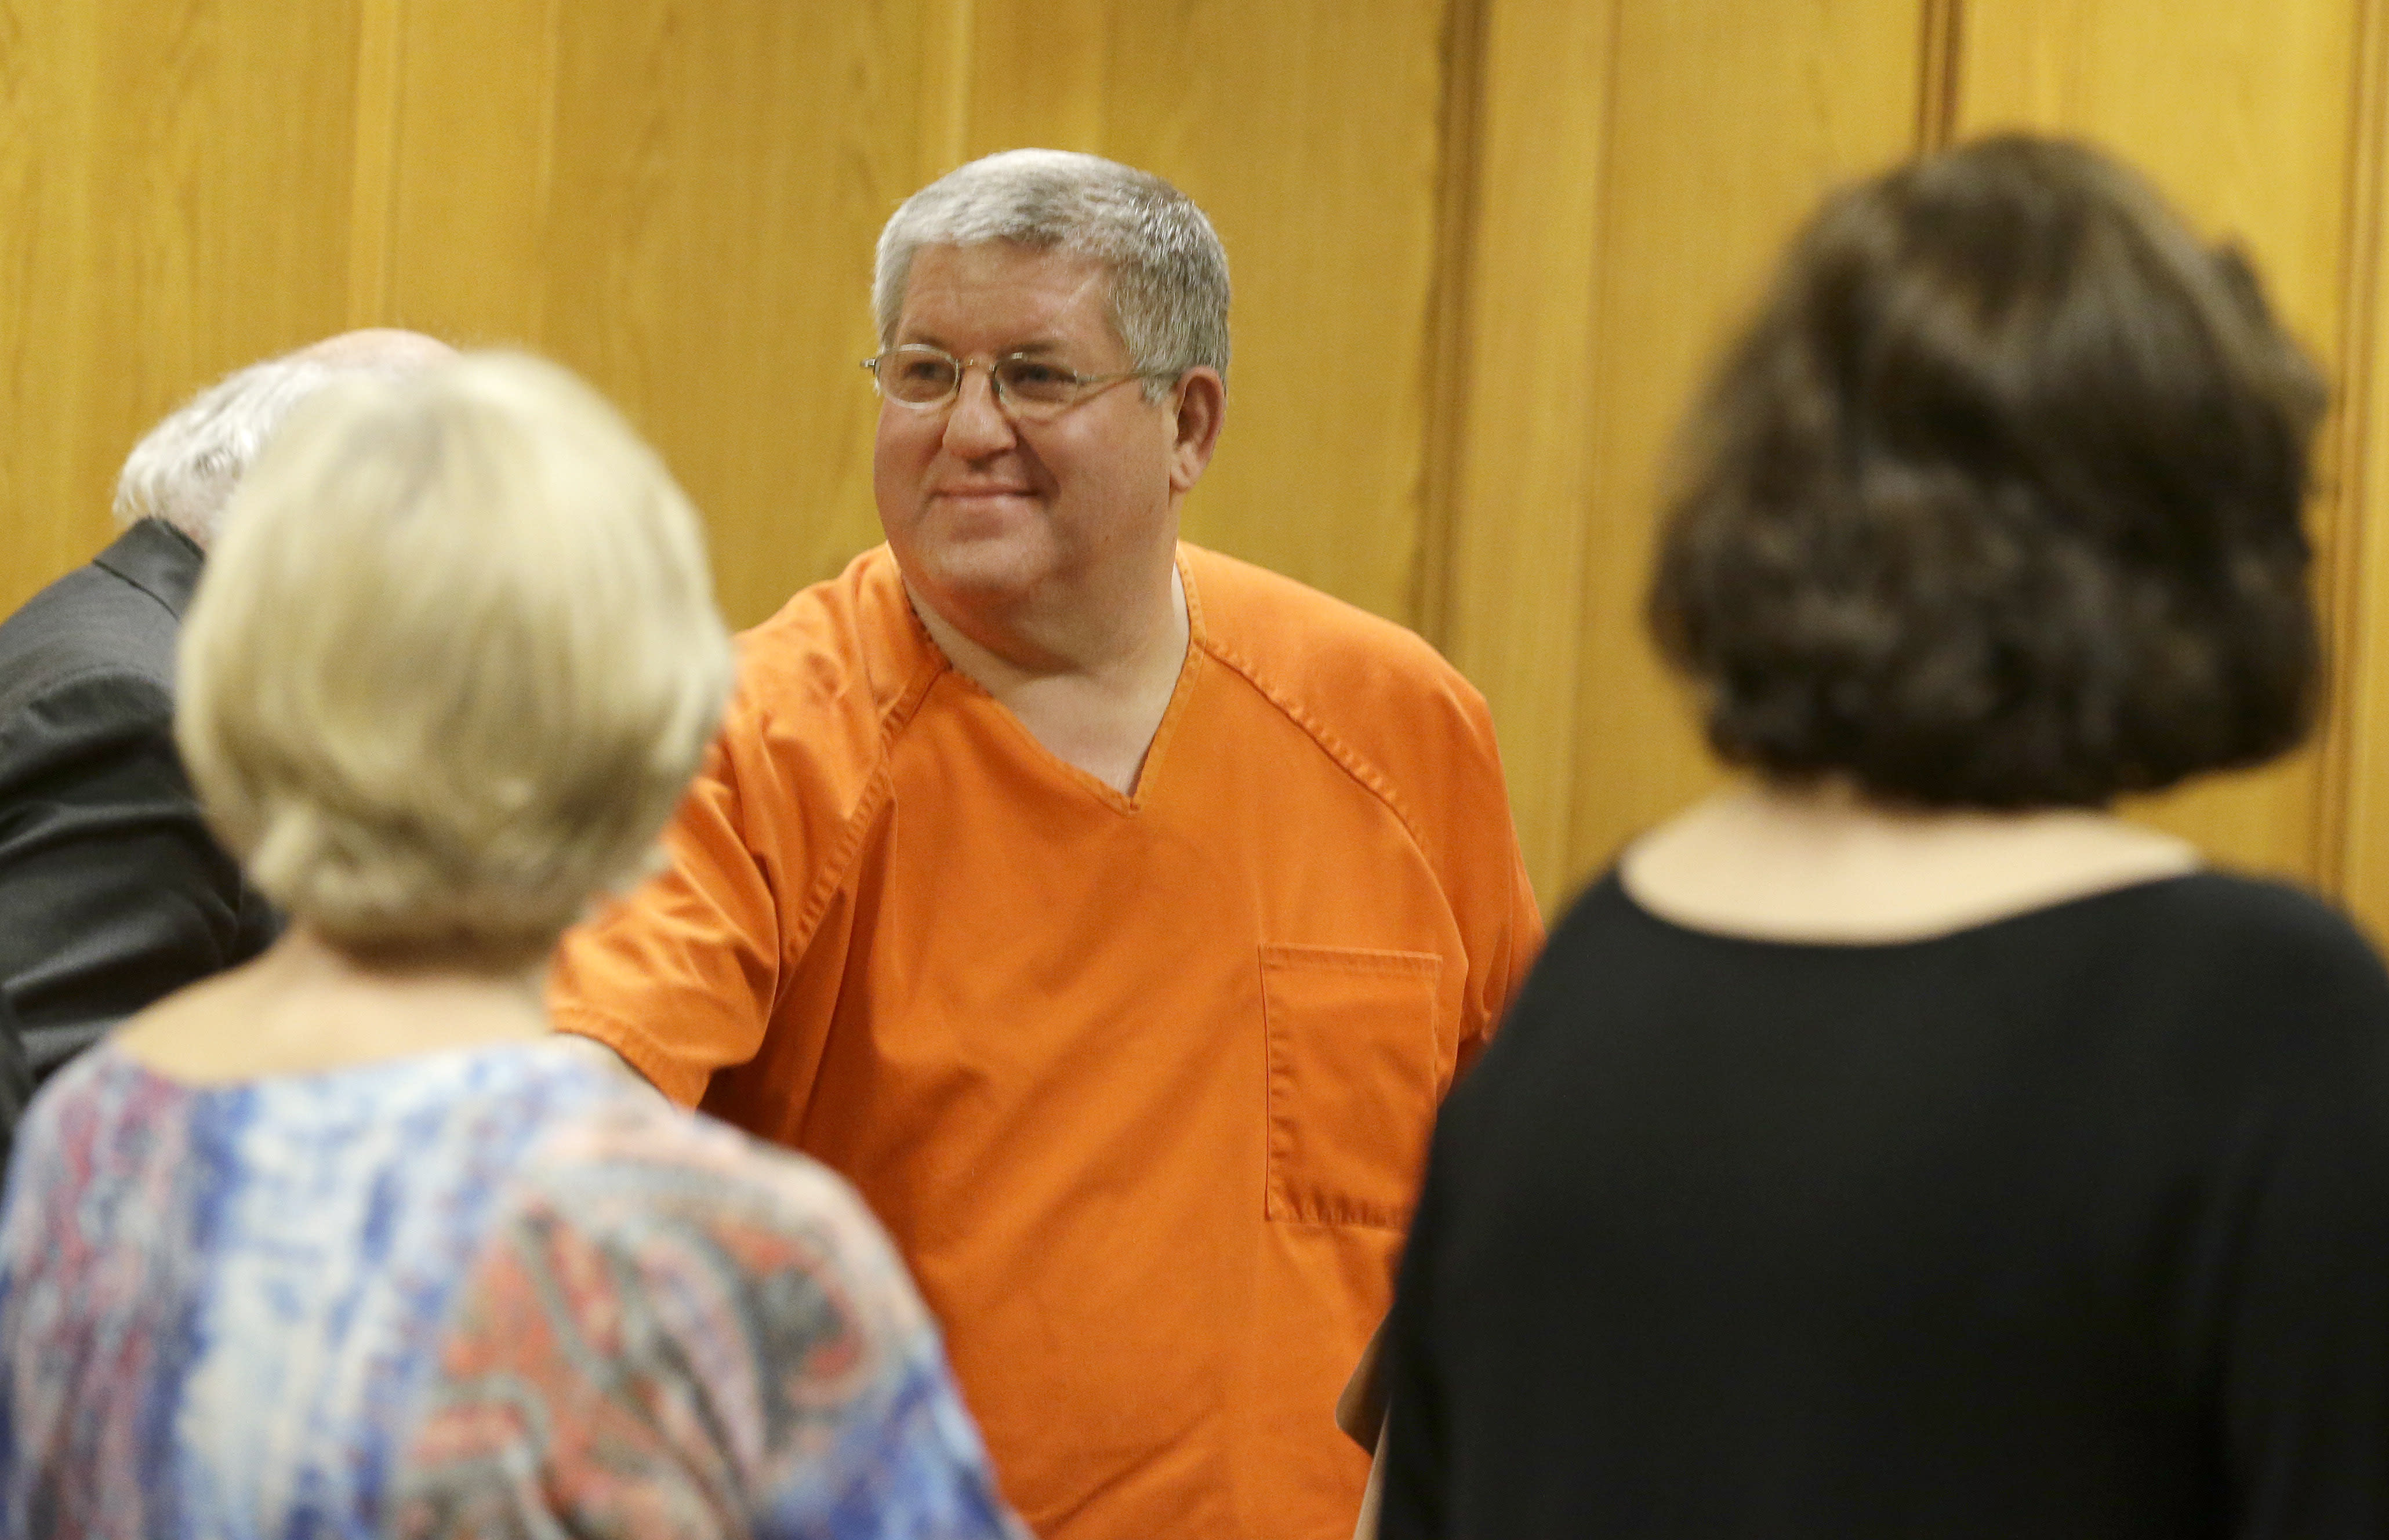 Ex Texas mortician freed from prison early